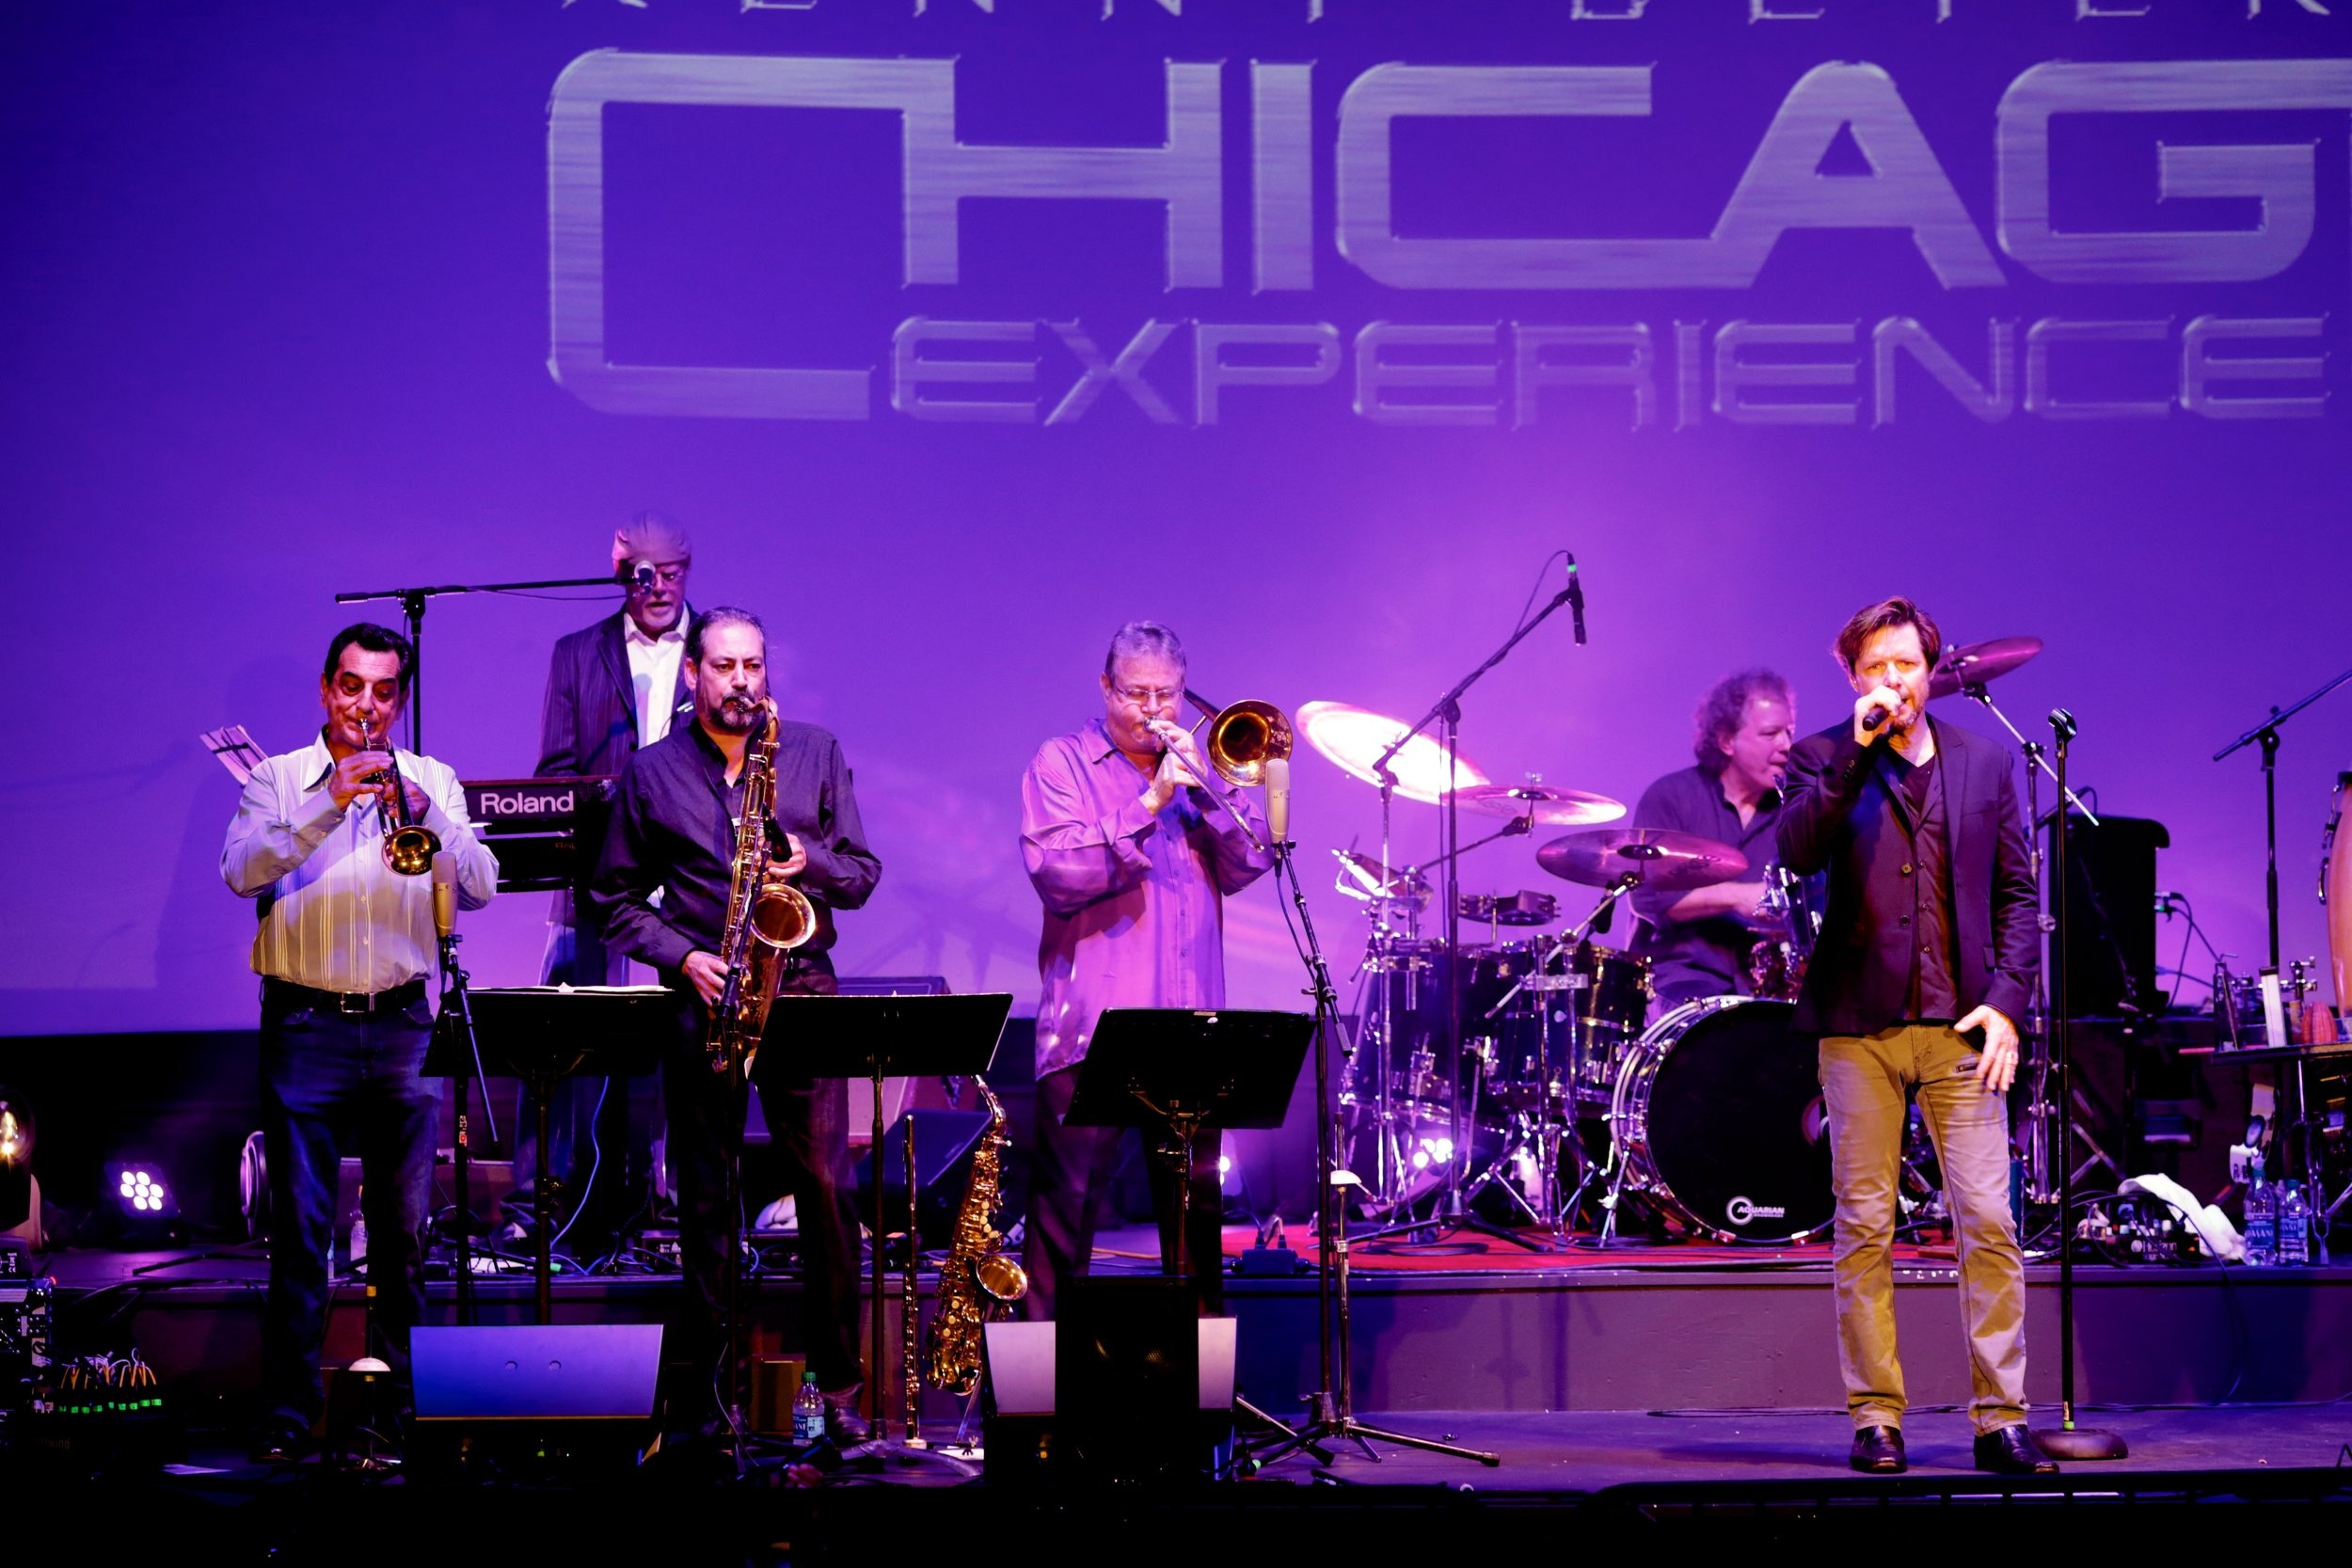 chicago-experience.jpg